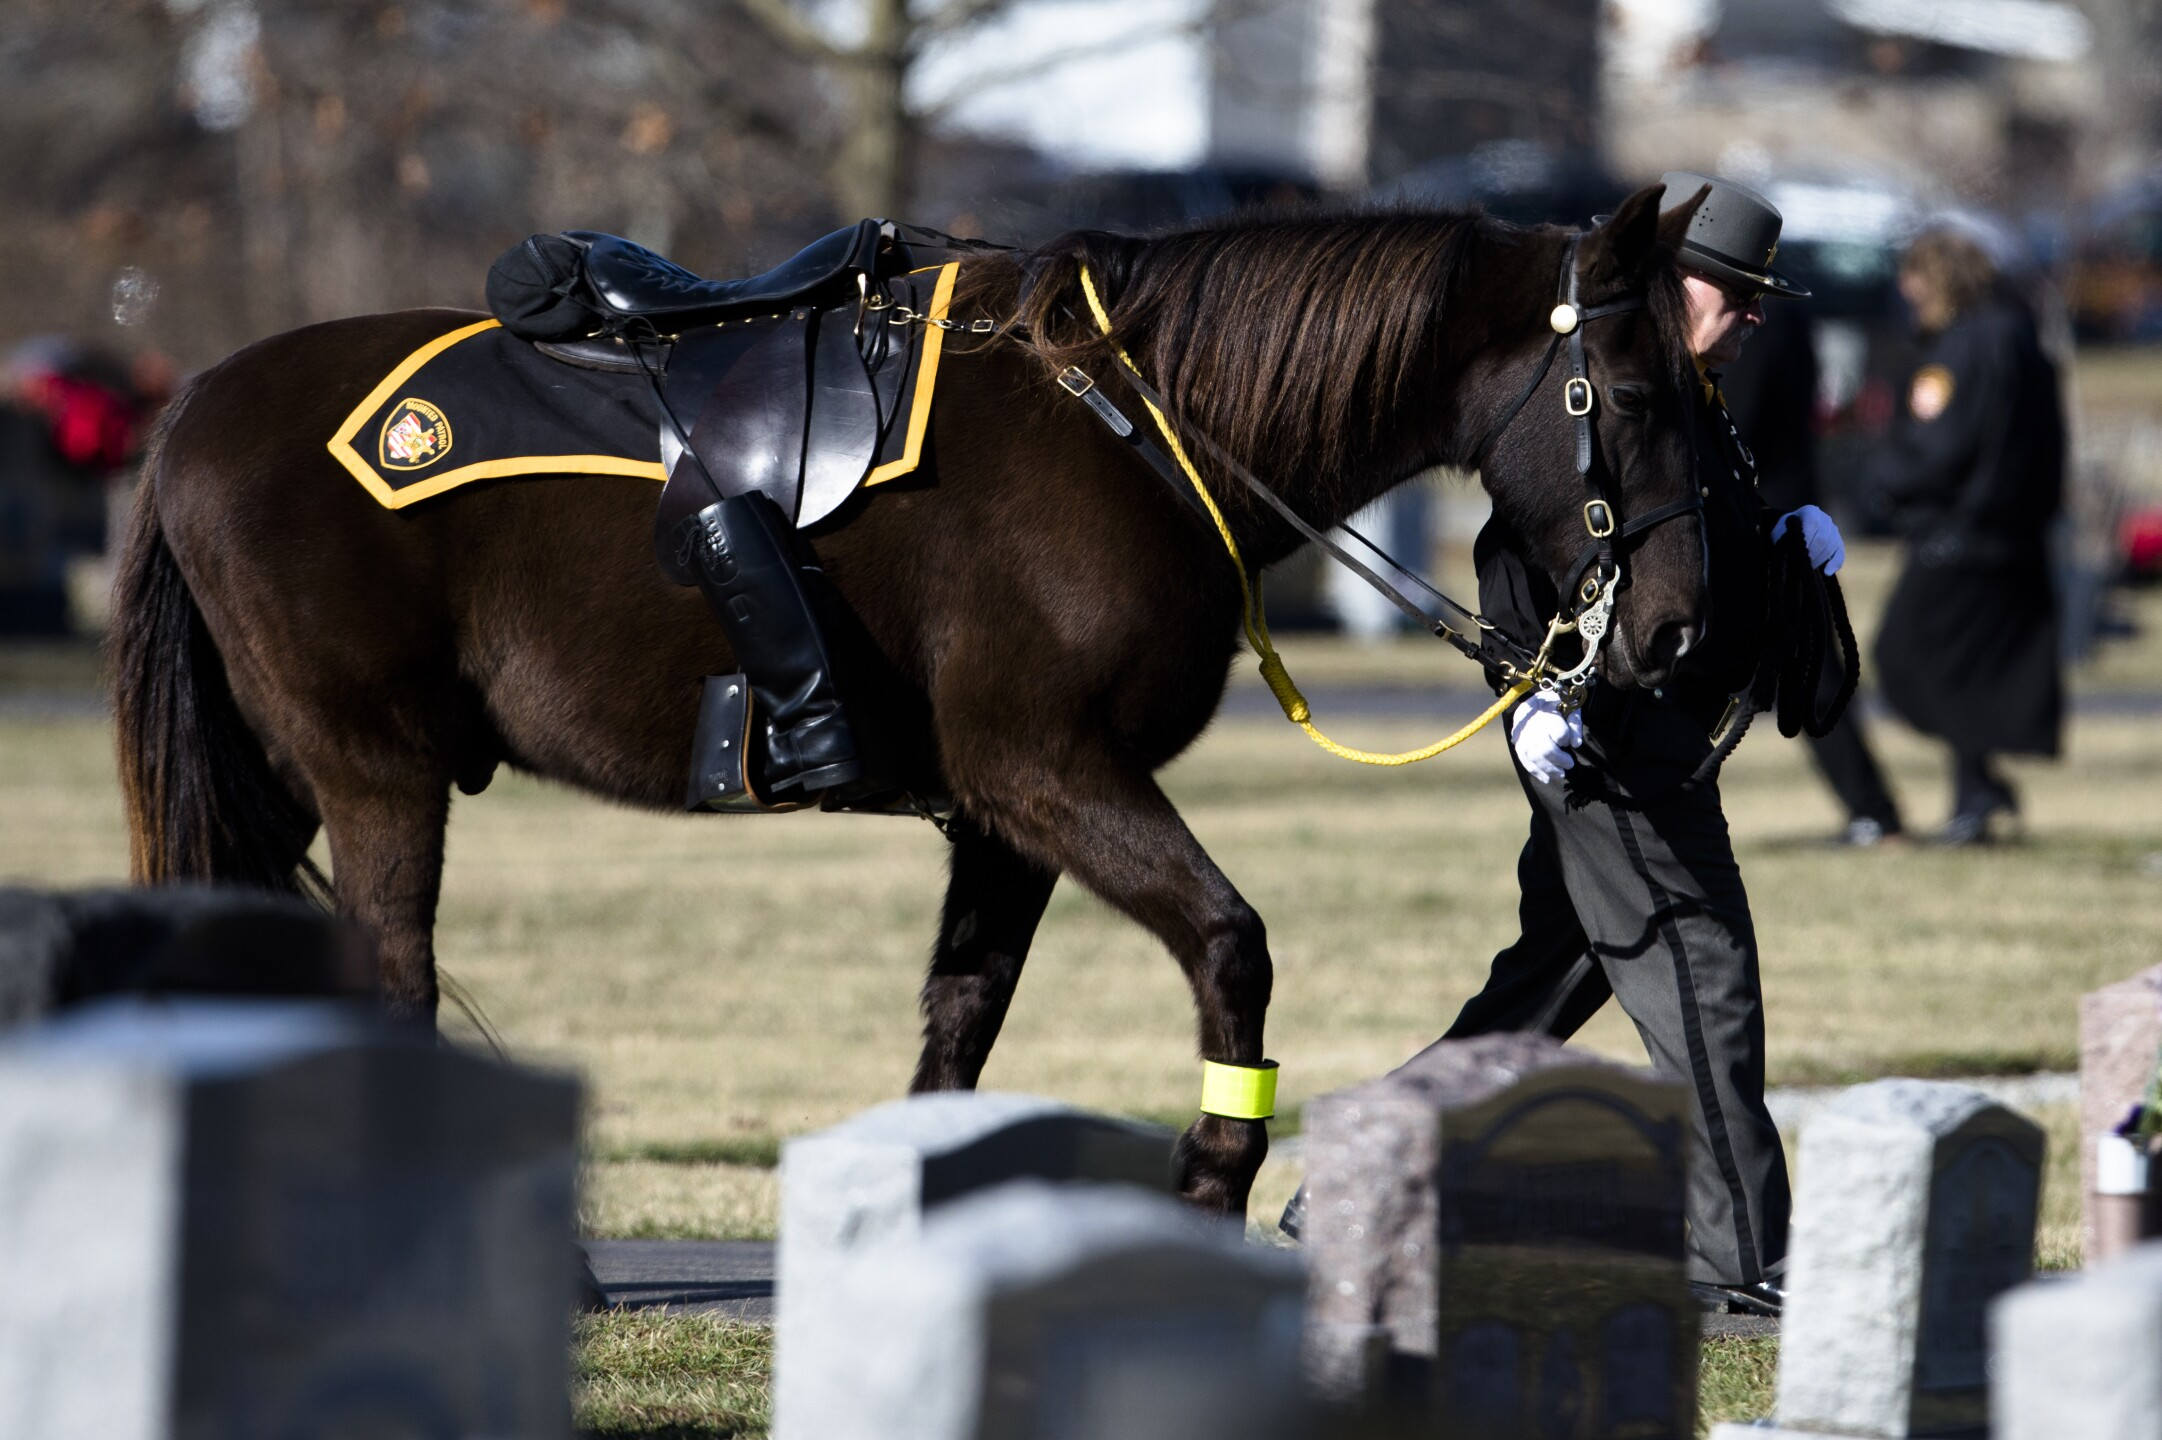 Police Burial Cemetary  148